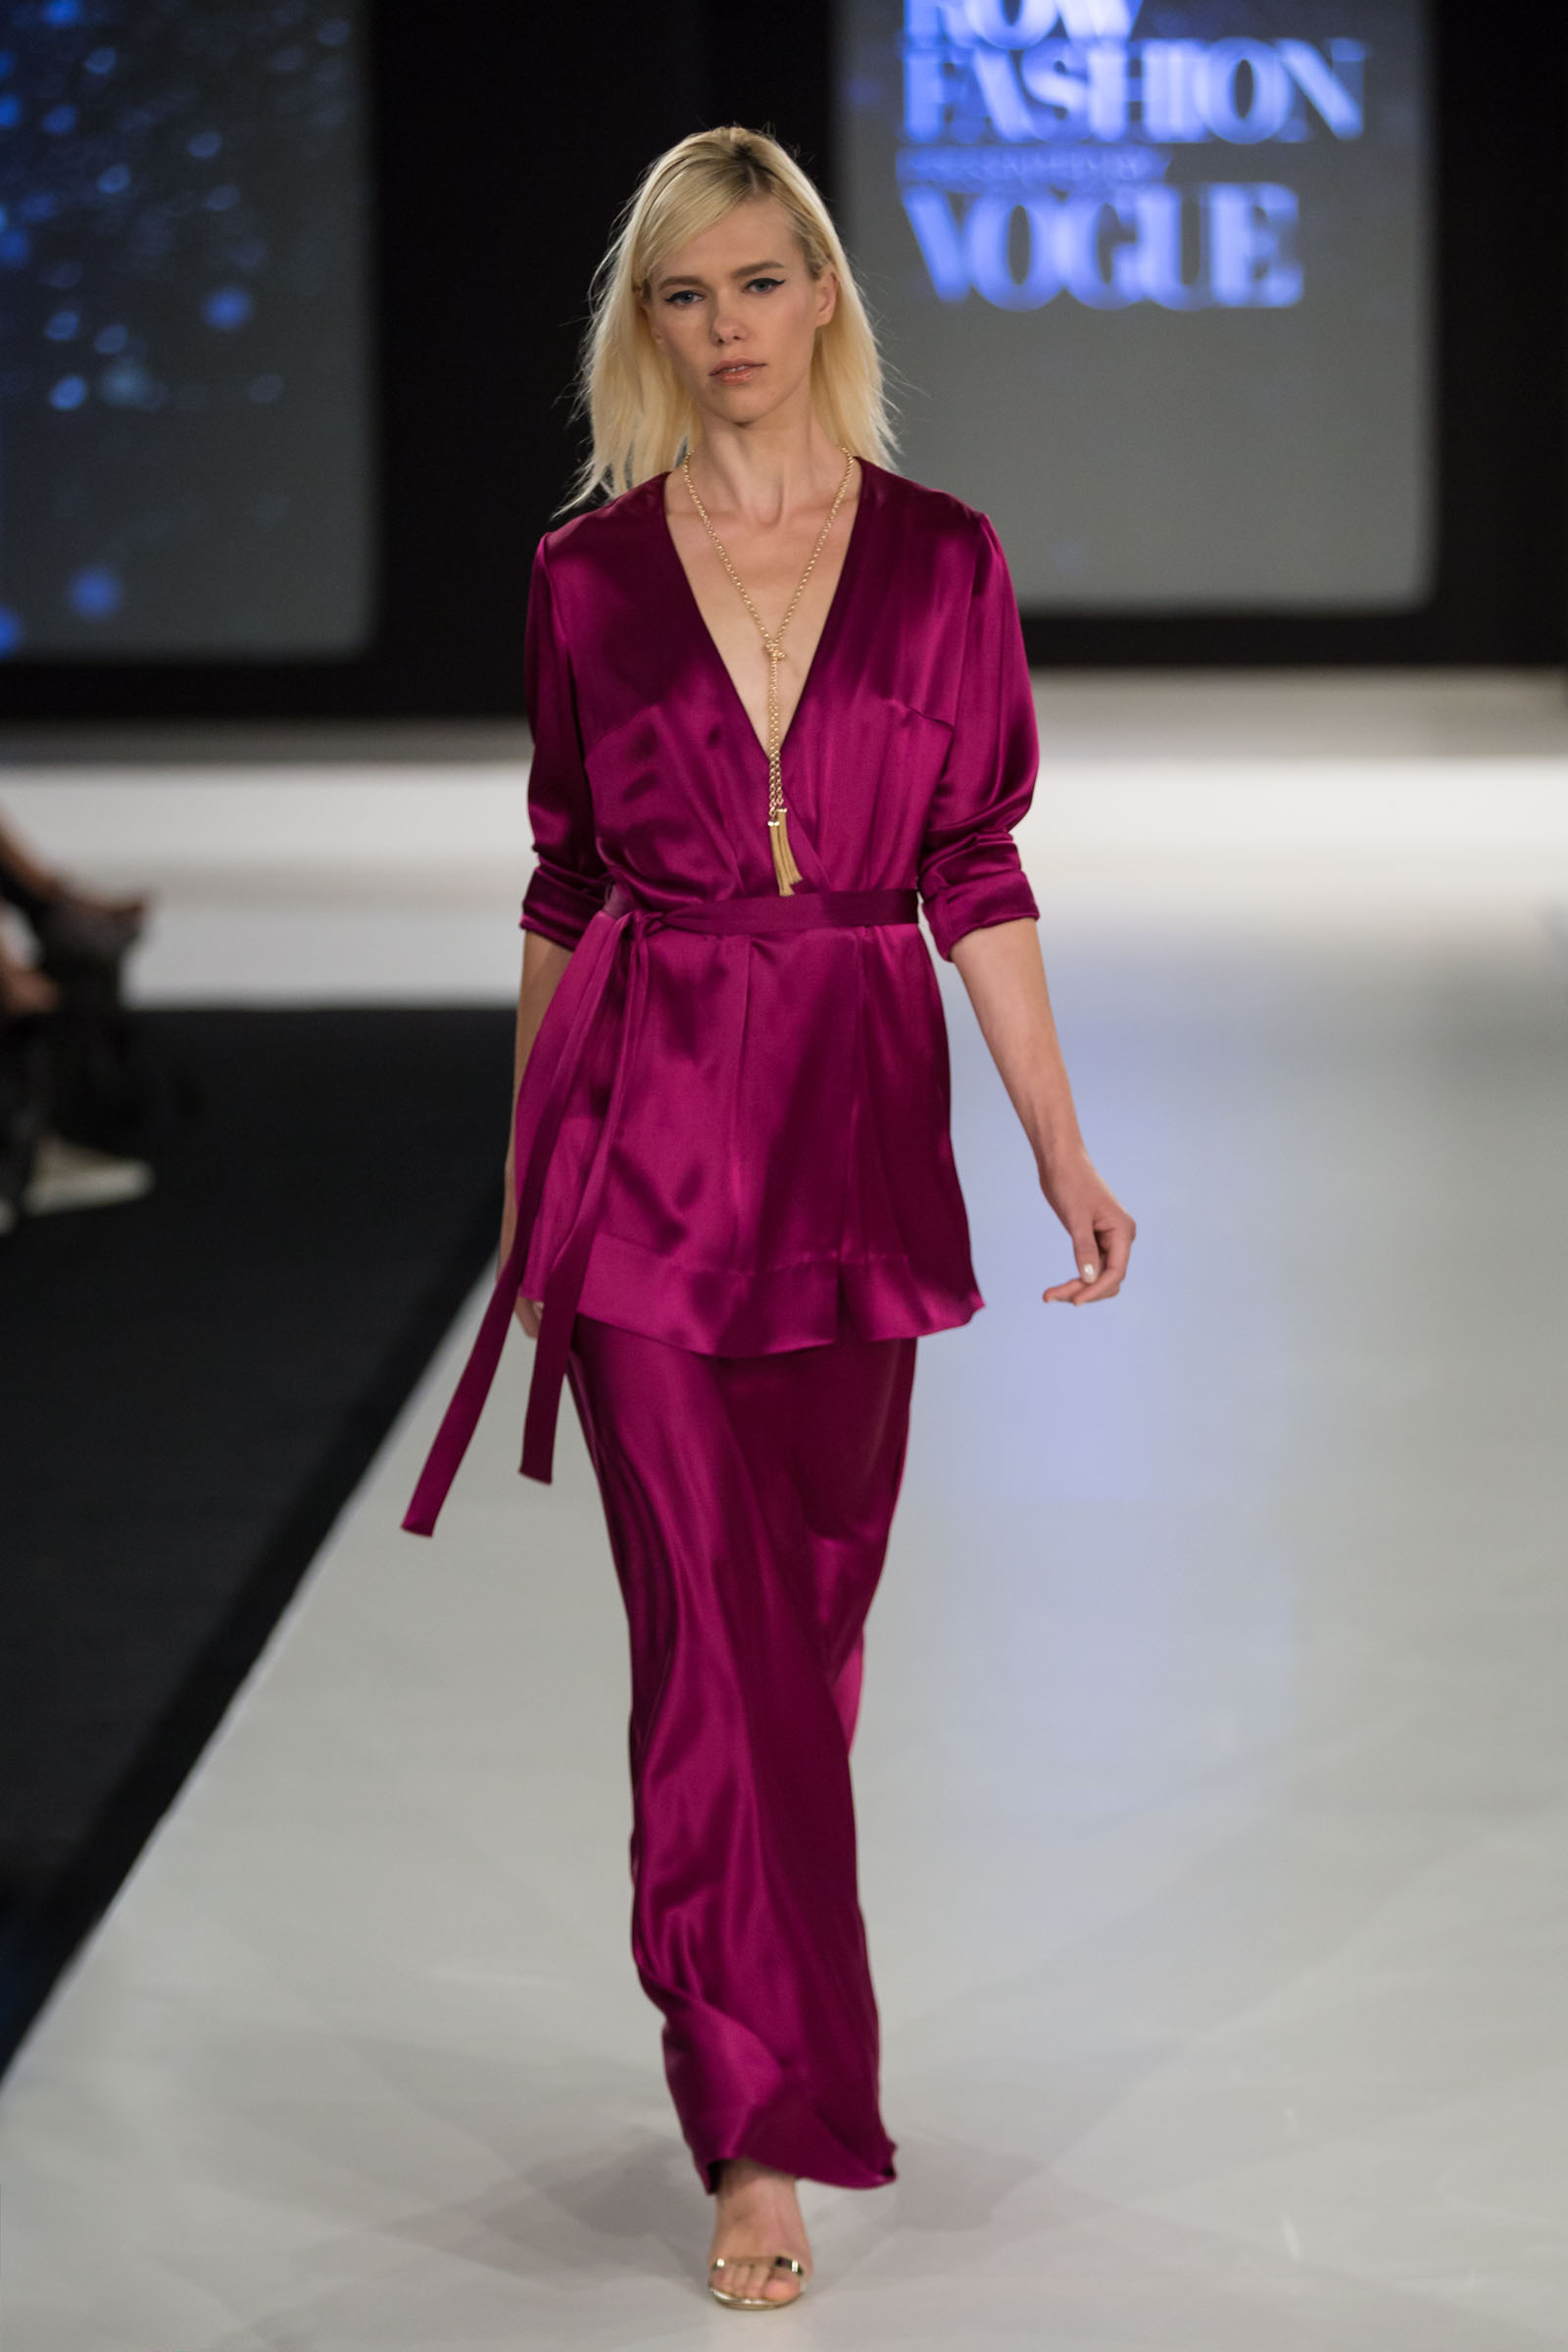 IDRS Participant Julie Danforth magenta silk robe and maxi skirt. Aldo metallic heels, BCBGMAXAZRIA jewelry.